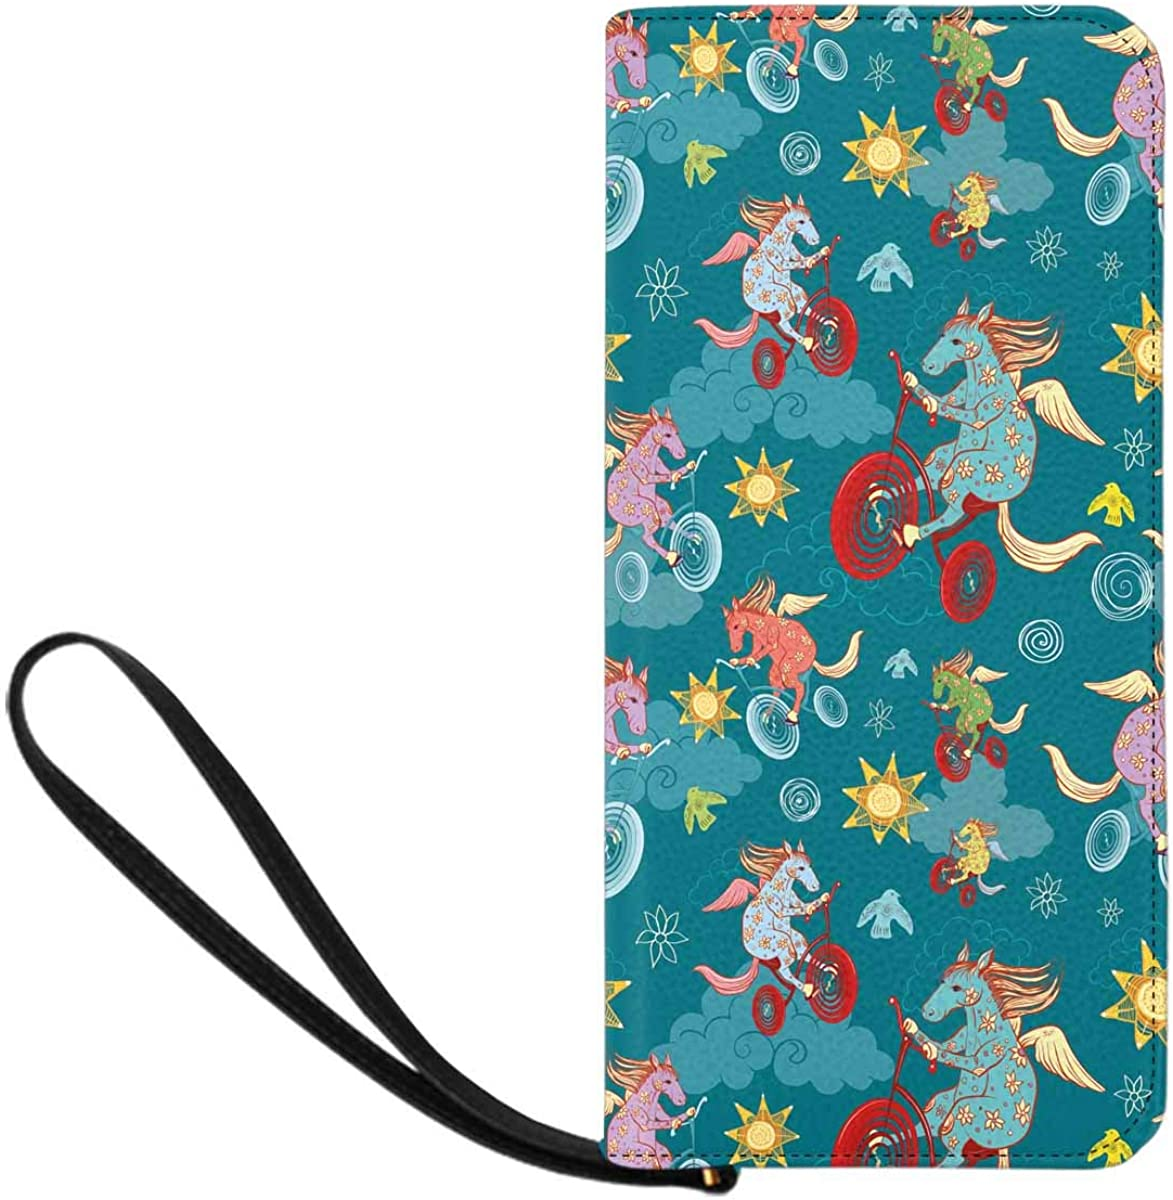 INTERESTPRINT Geometric Unicorn Bicycle Clutch Purse for Women Evening Party